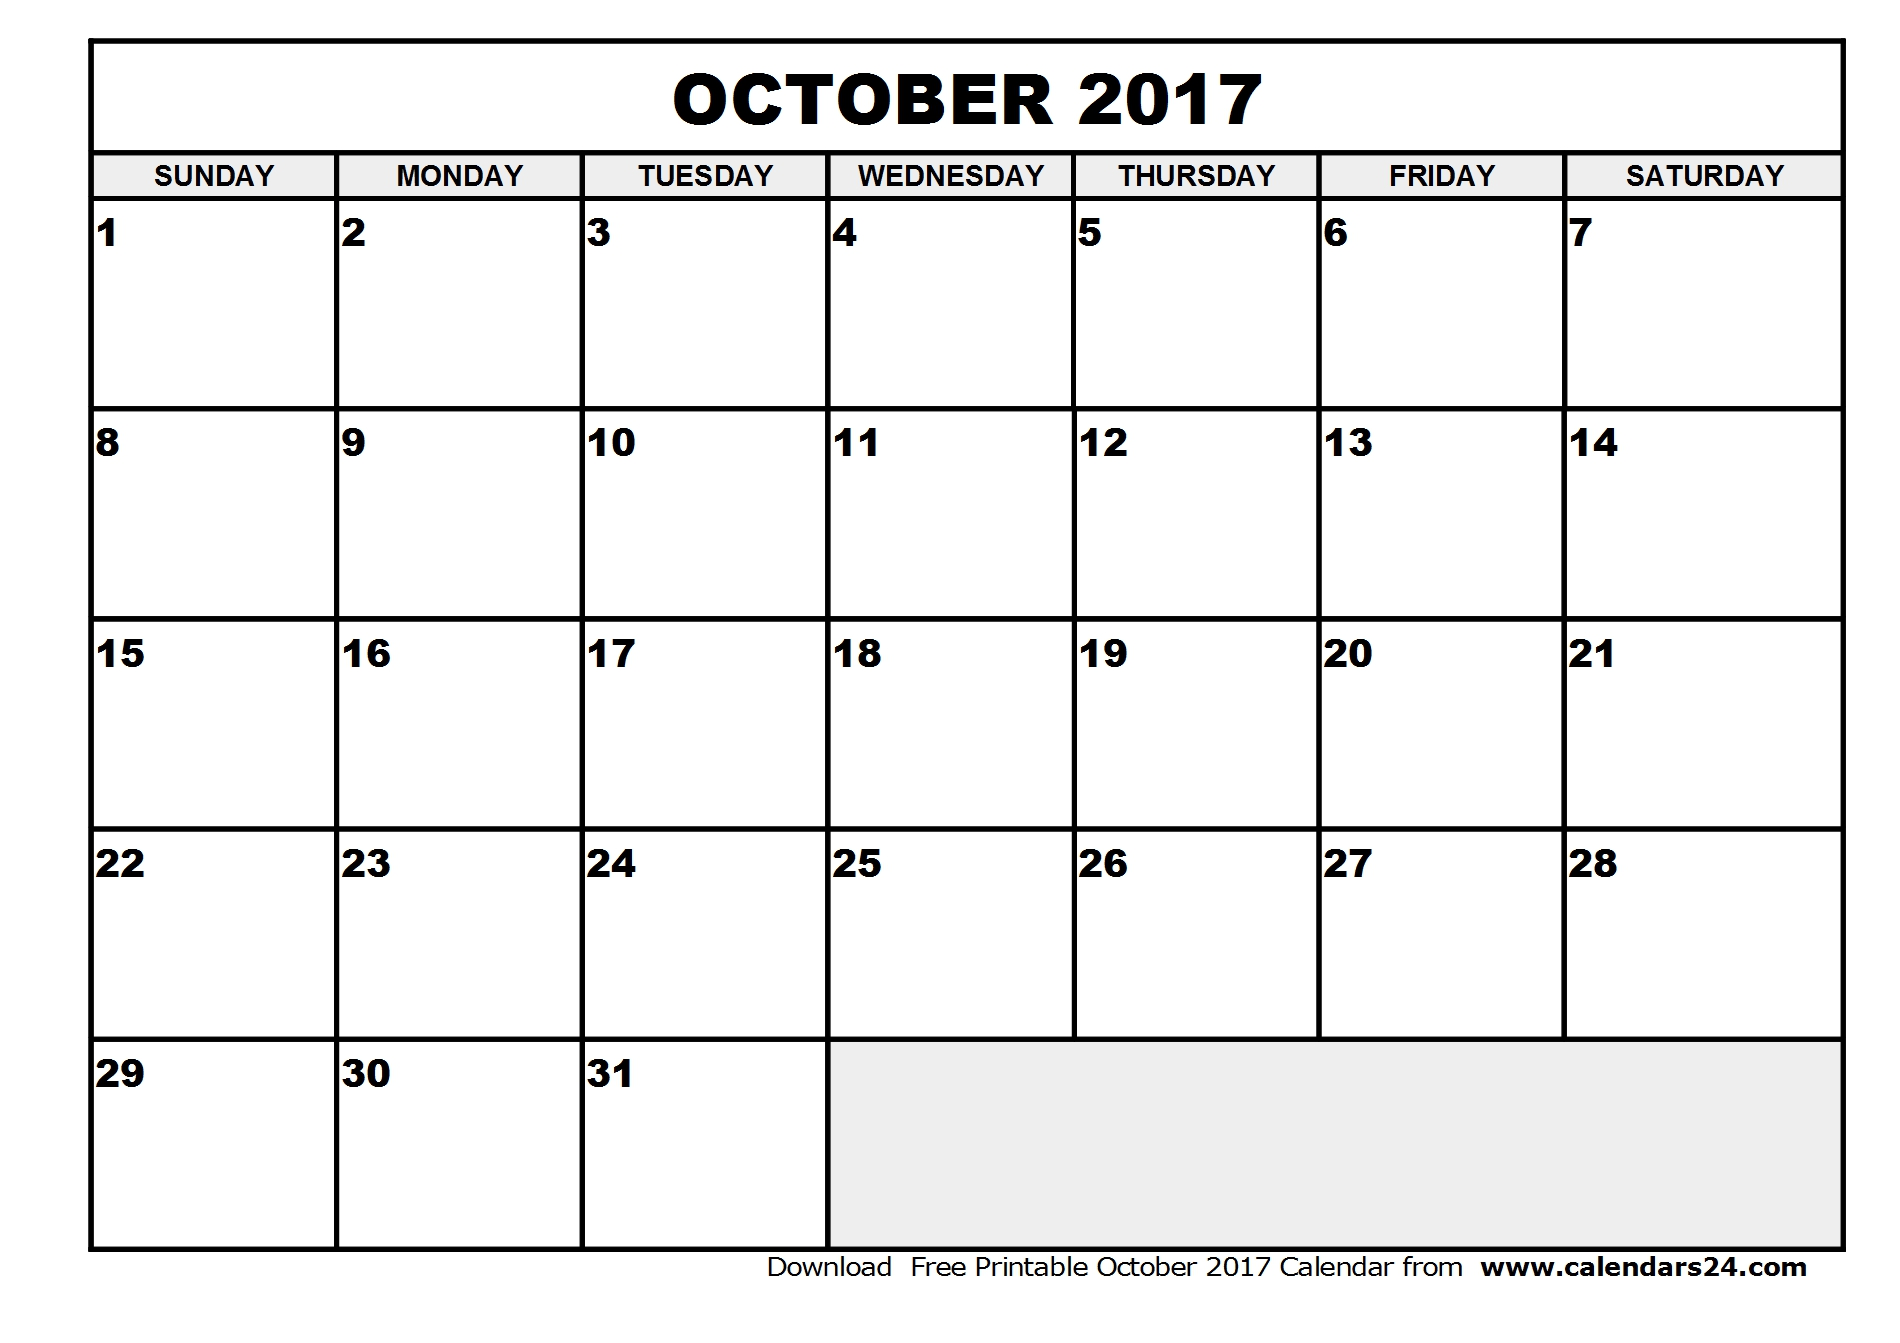 October 2017 Calendar Template | weekly calendar template